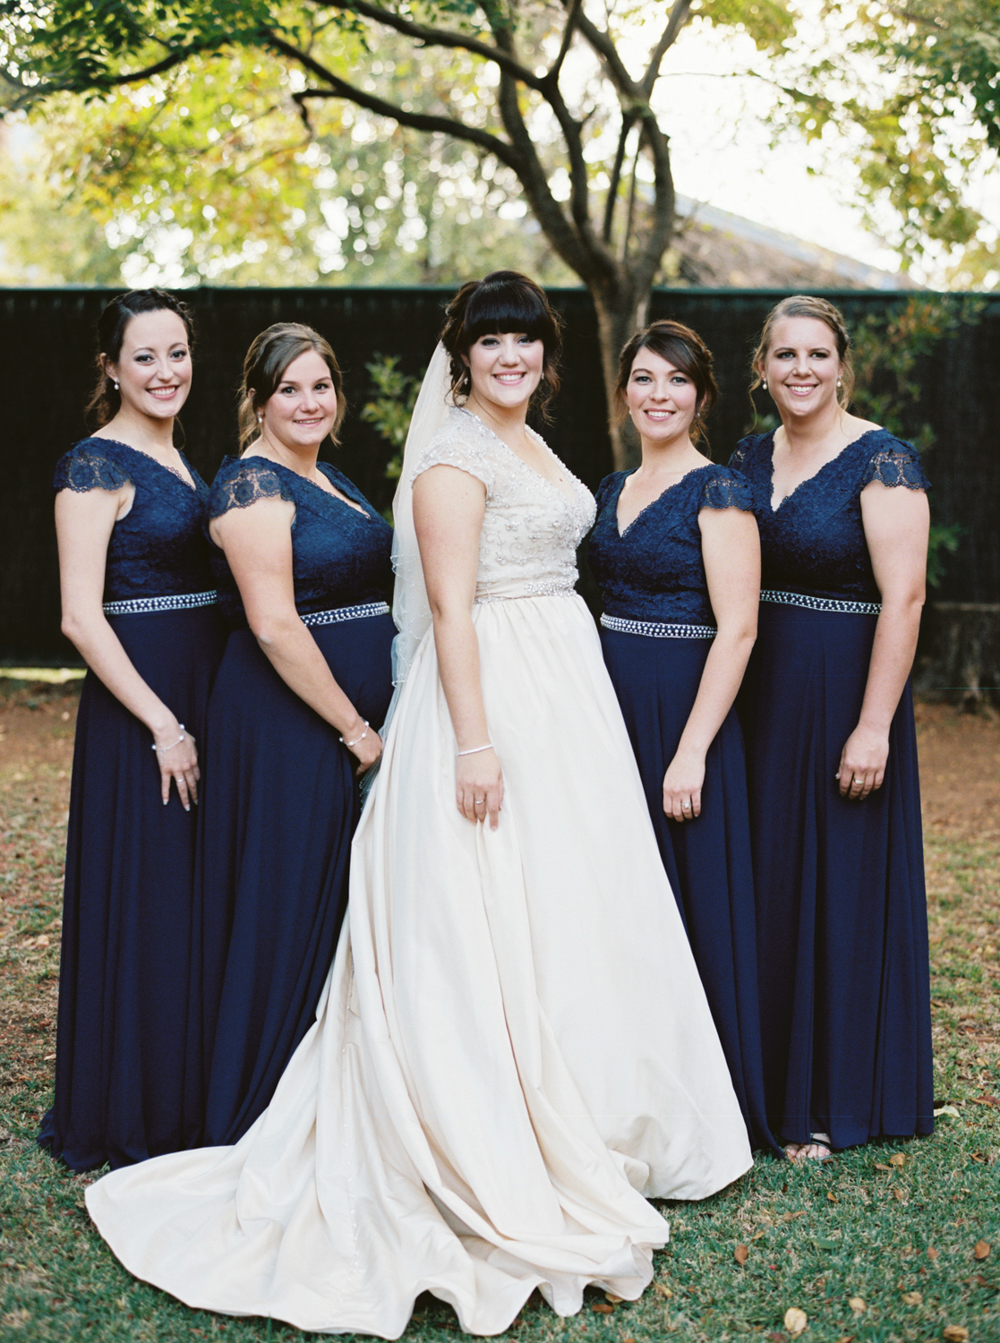 00048- Dubbo NSW Wedding Photographer Sheri McMahon.jpg